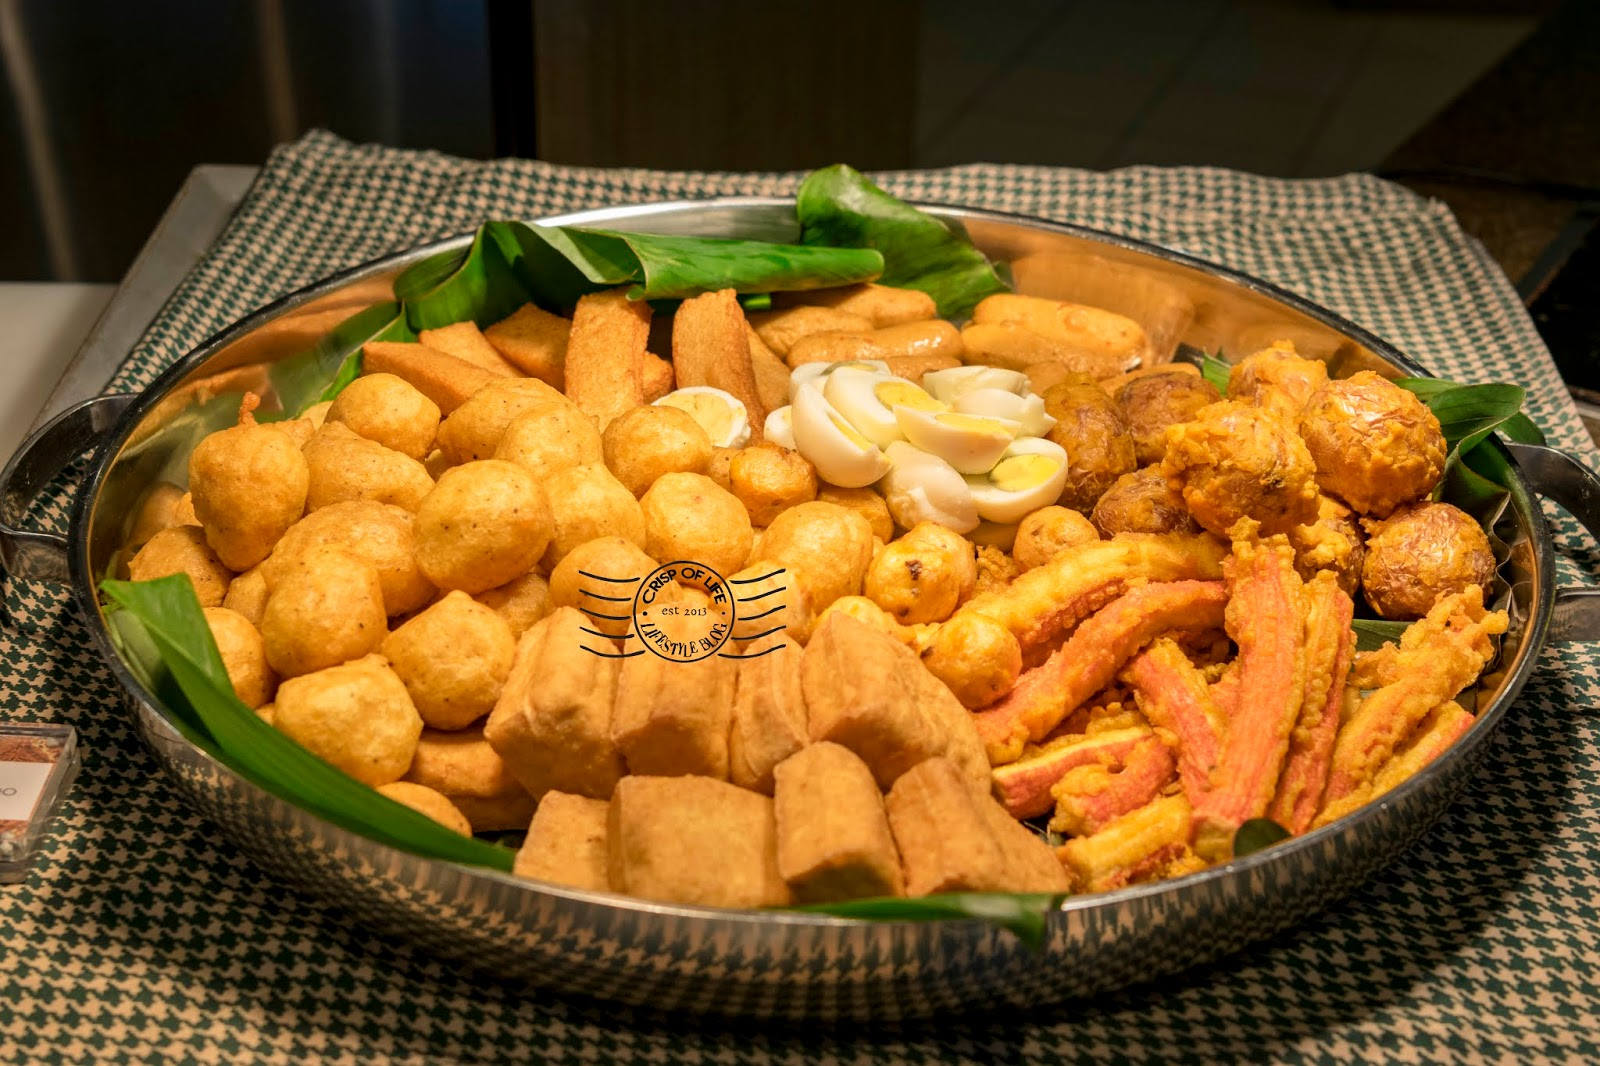 Kampung Buffet with Traditional Local Dishes Every Friday @ Golden Sands Resort Penang